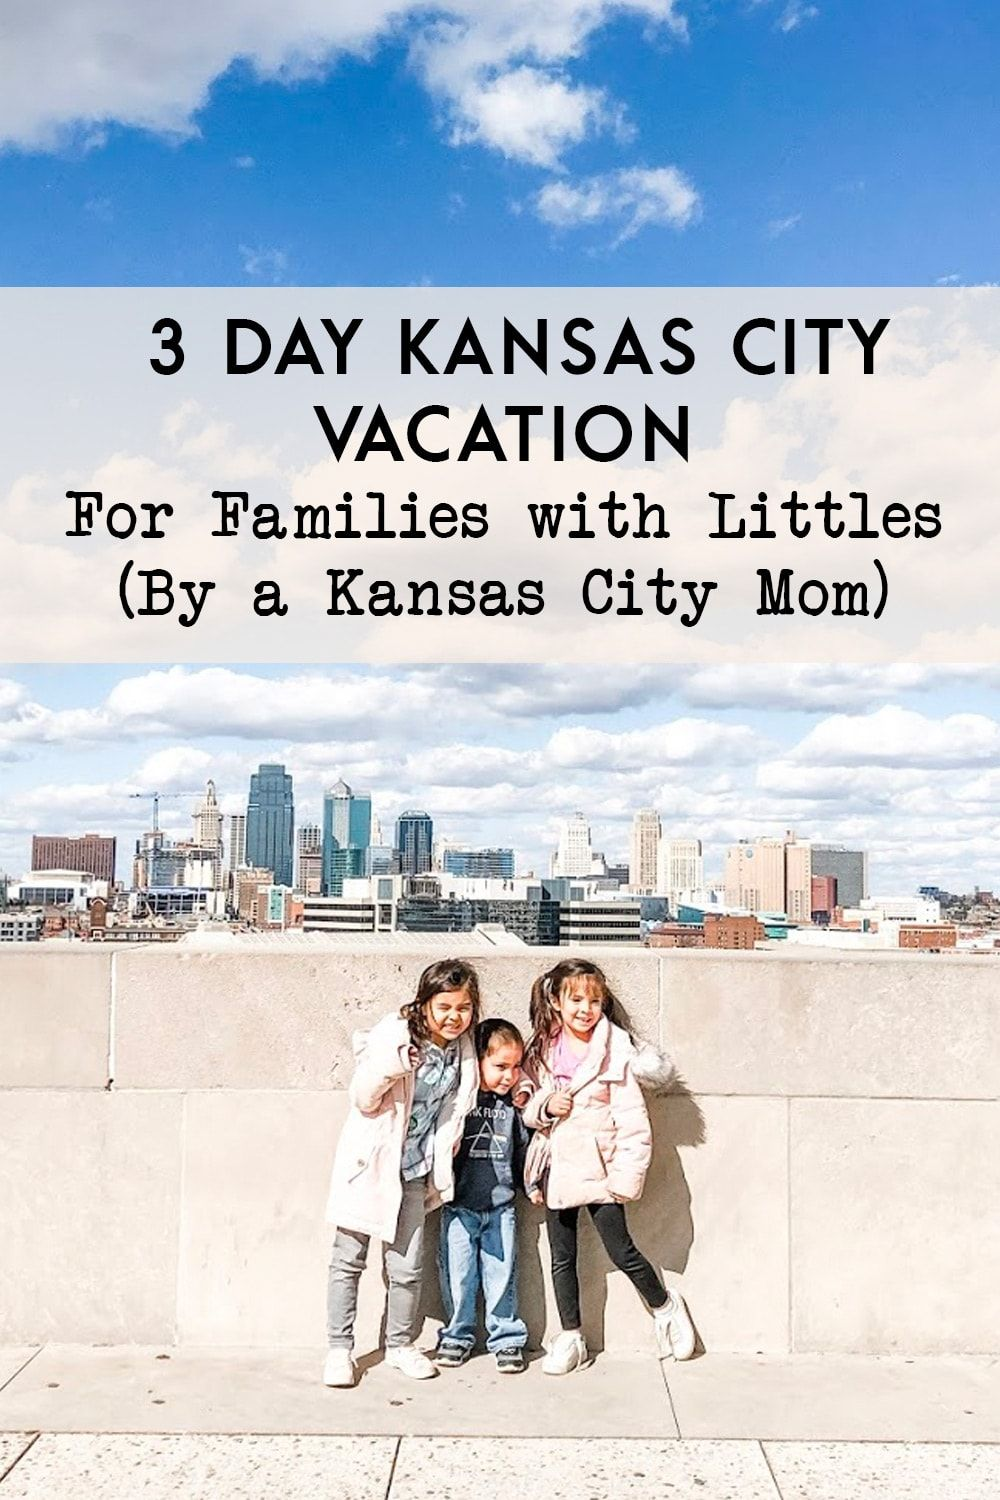 3 Day Weekend Vacation Things To Do In Kansas City With Kids City Vacation Weekend Vacations City Travel Photography